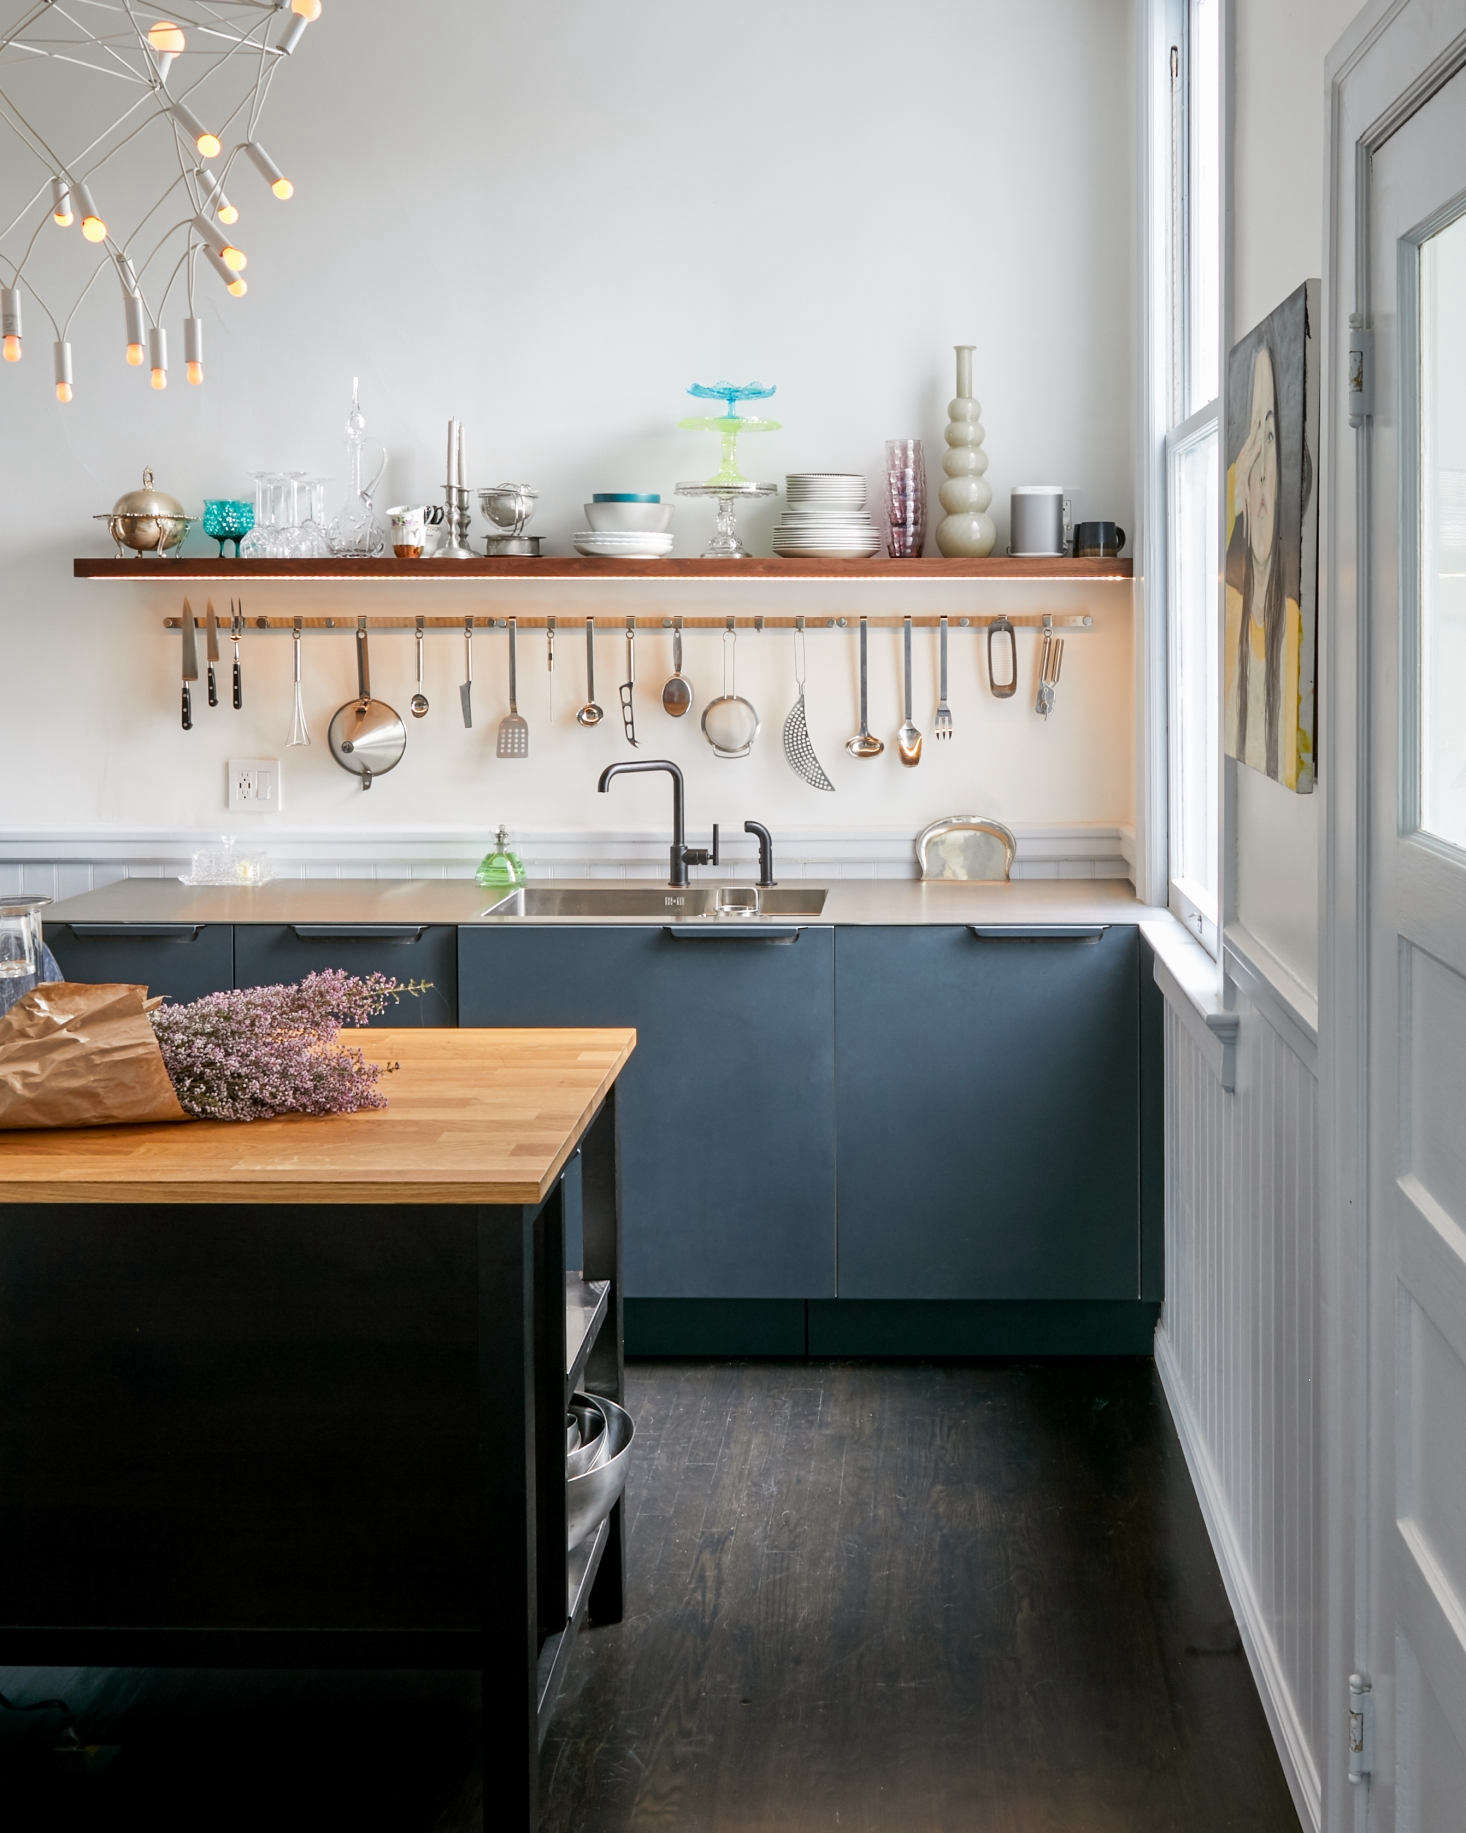 ikea kitchen remodel lowes outdoor island in praise of 15 kitchens from the remodelista archives my previous i had custom cabinets gaggenau appliances vola faucets